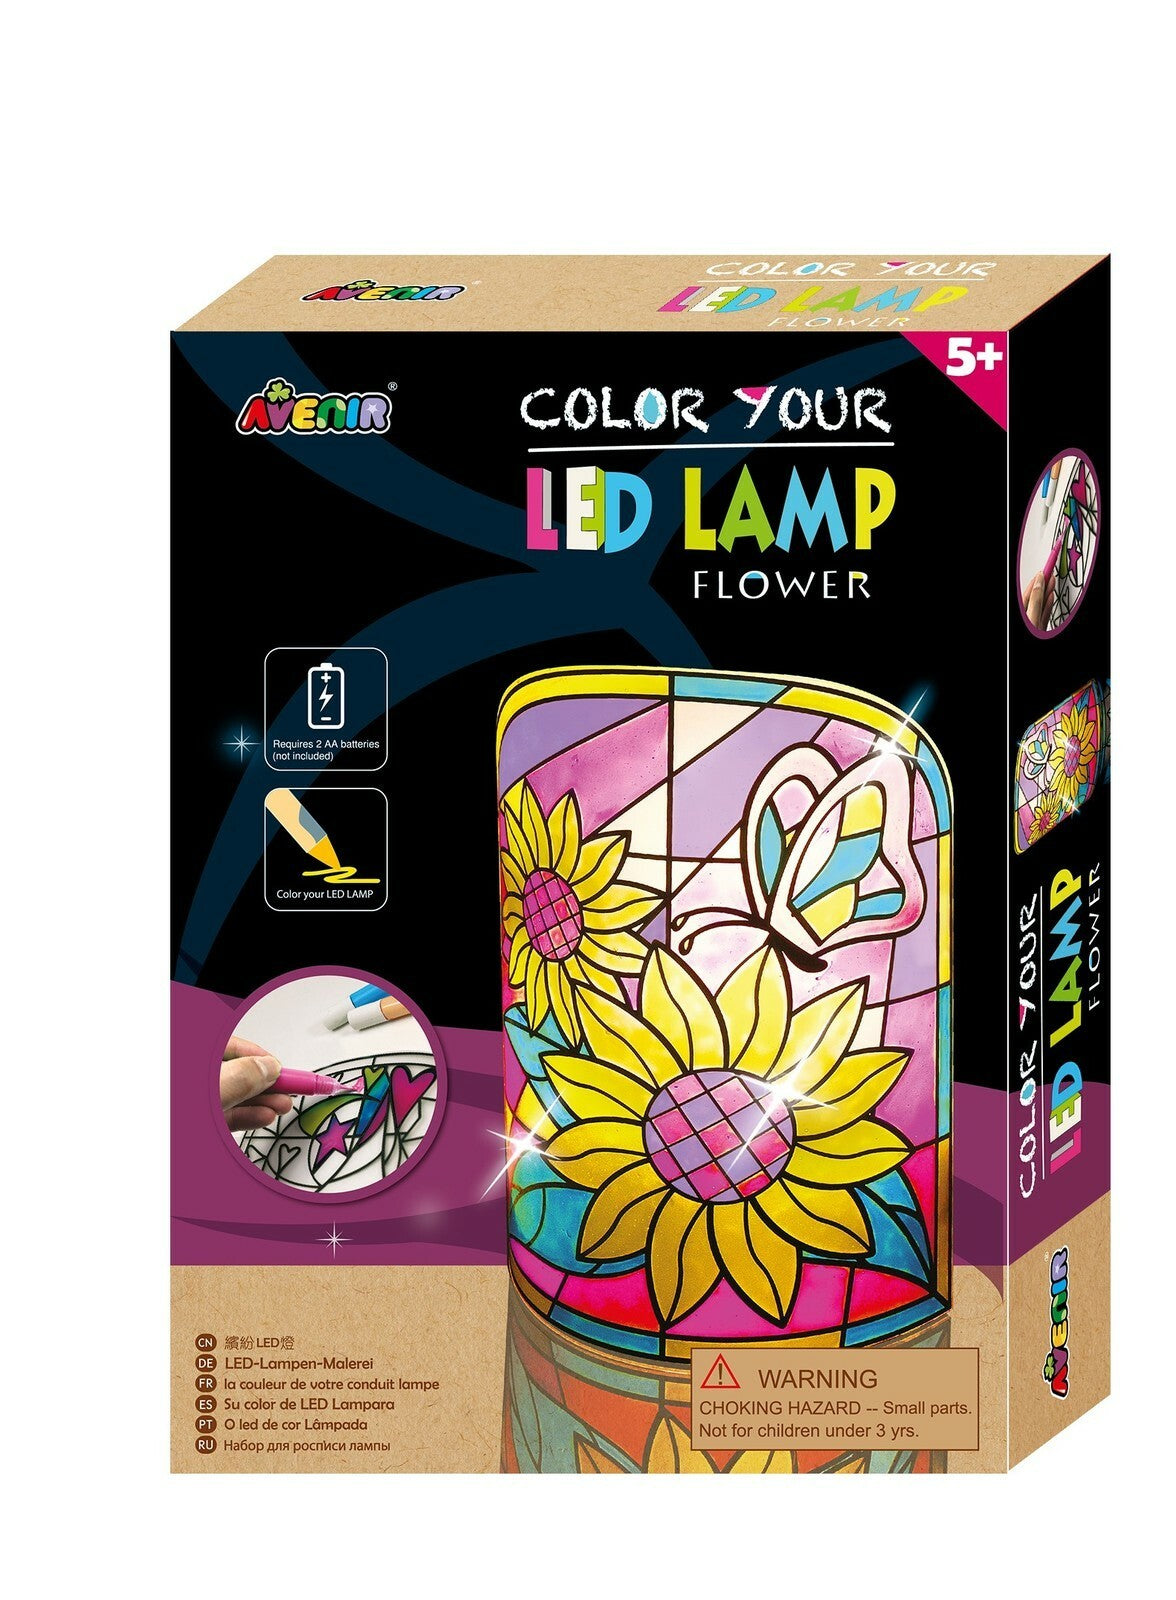 Avenir: Colour Your Own LED Lamp - Flower